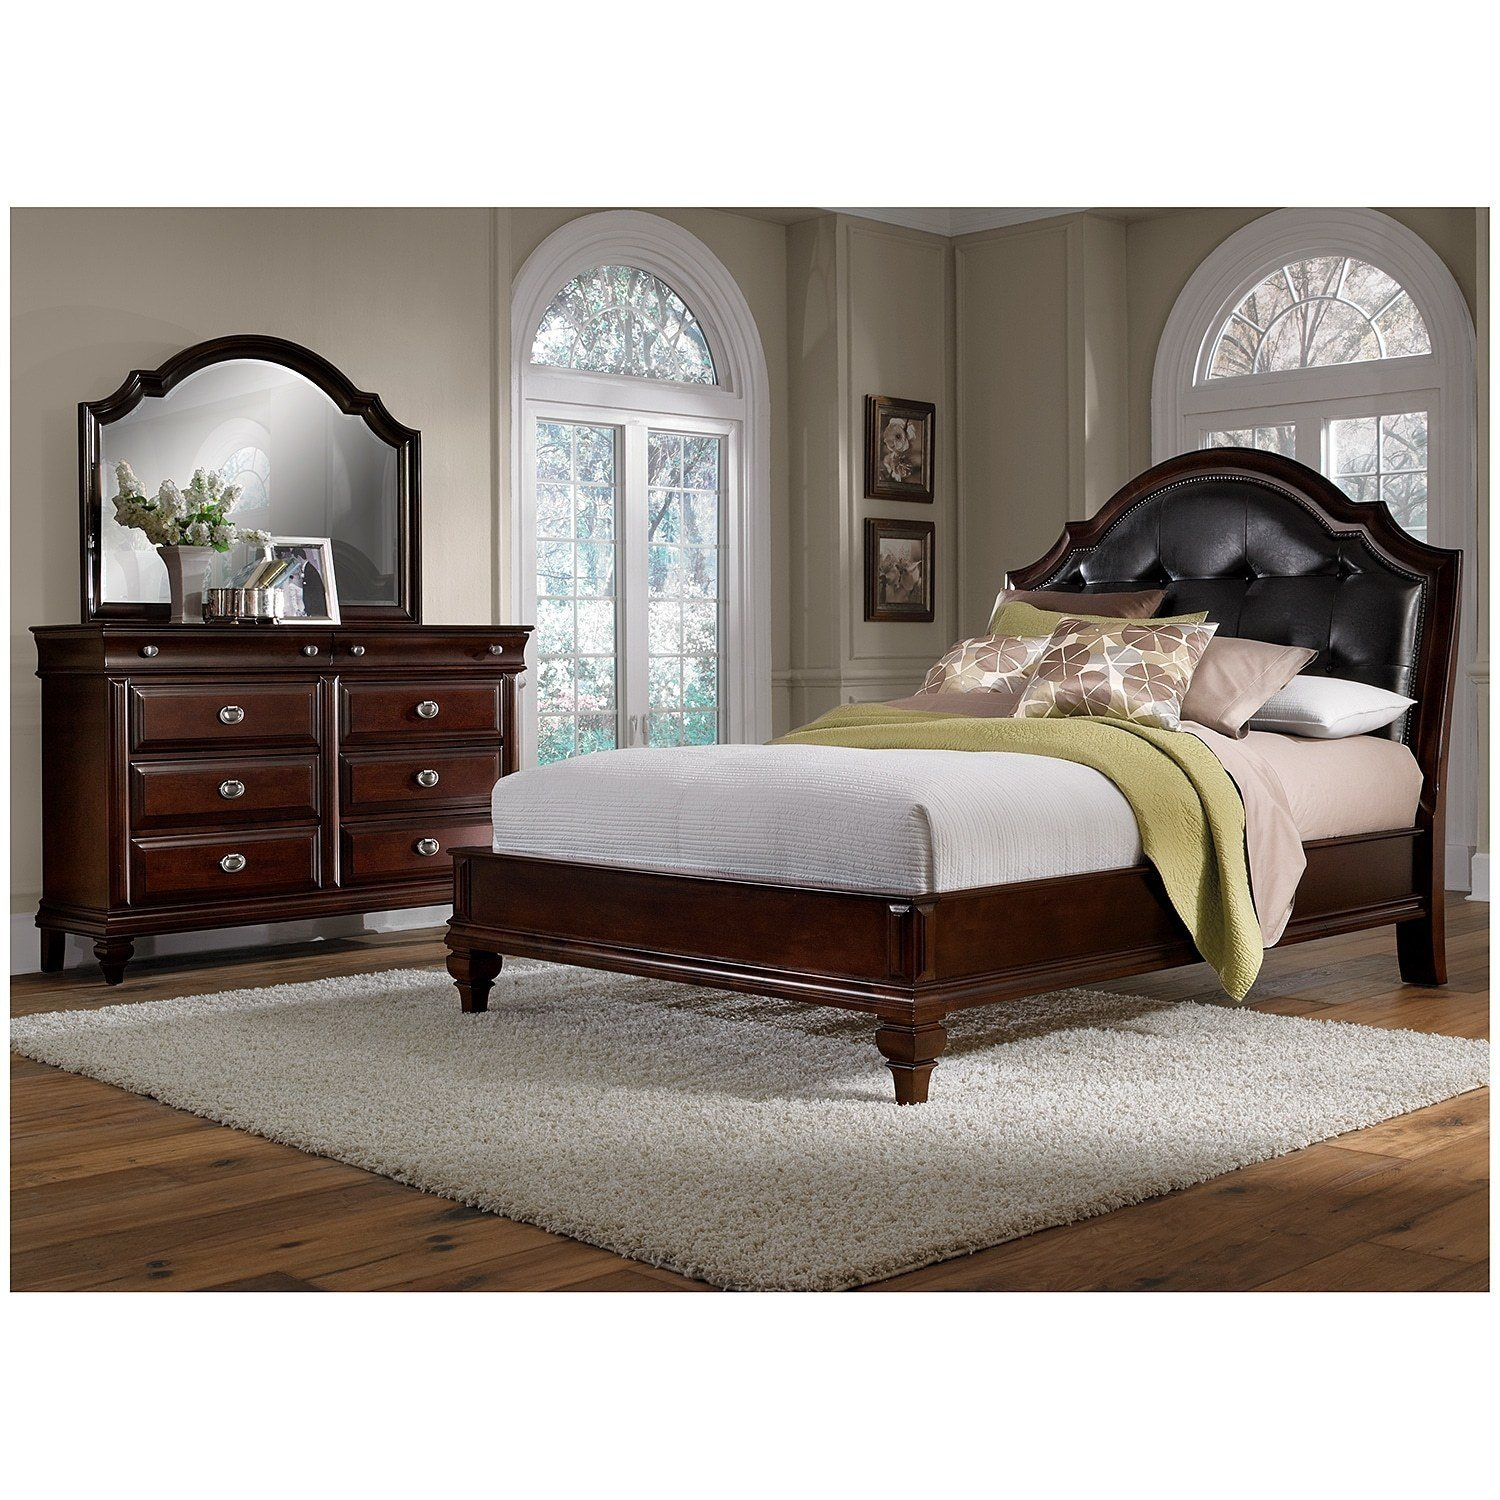 Best Shop 5 Piece Bedroom Sets Value City Furniture With Pictures